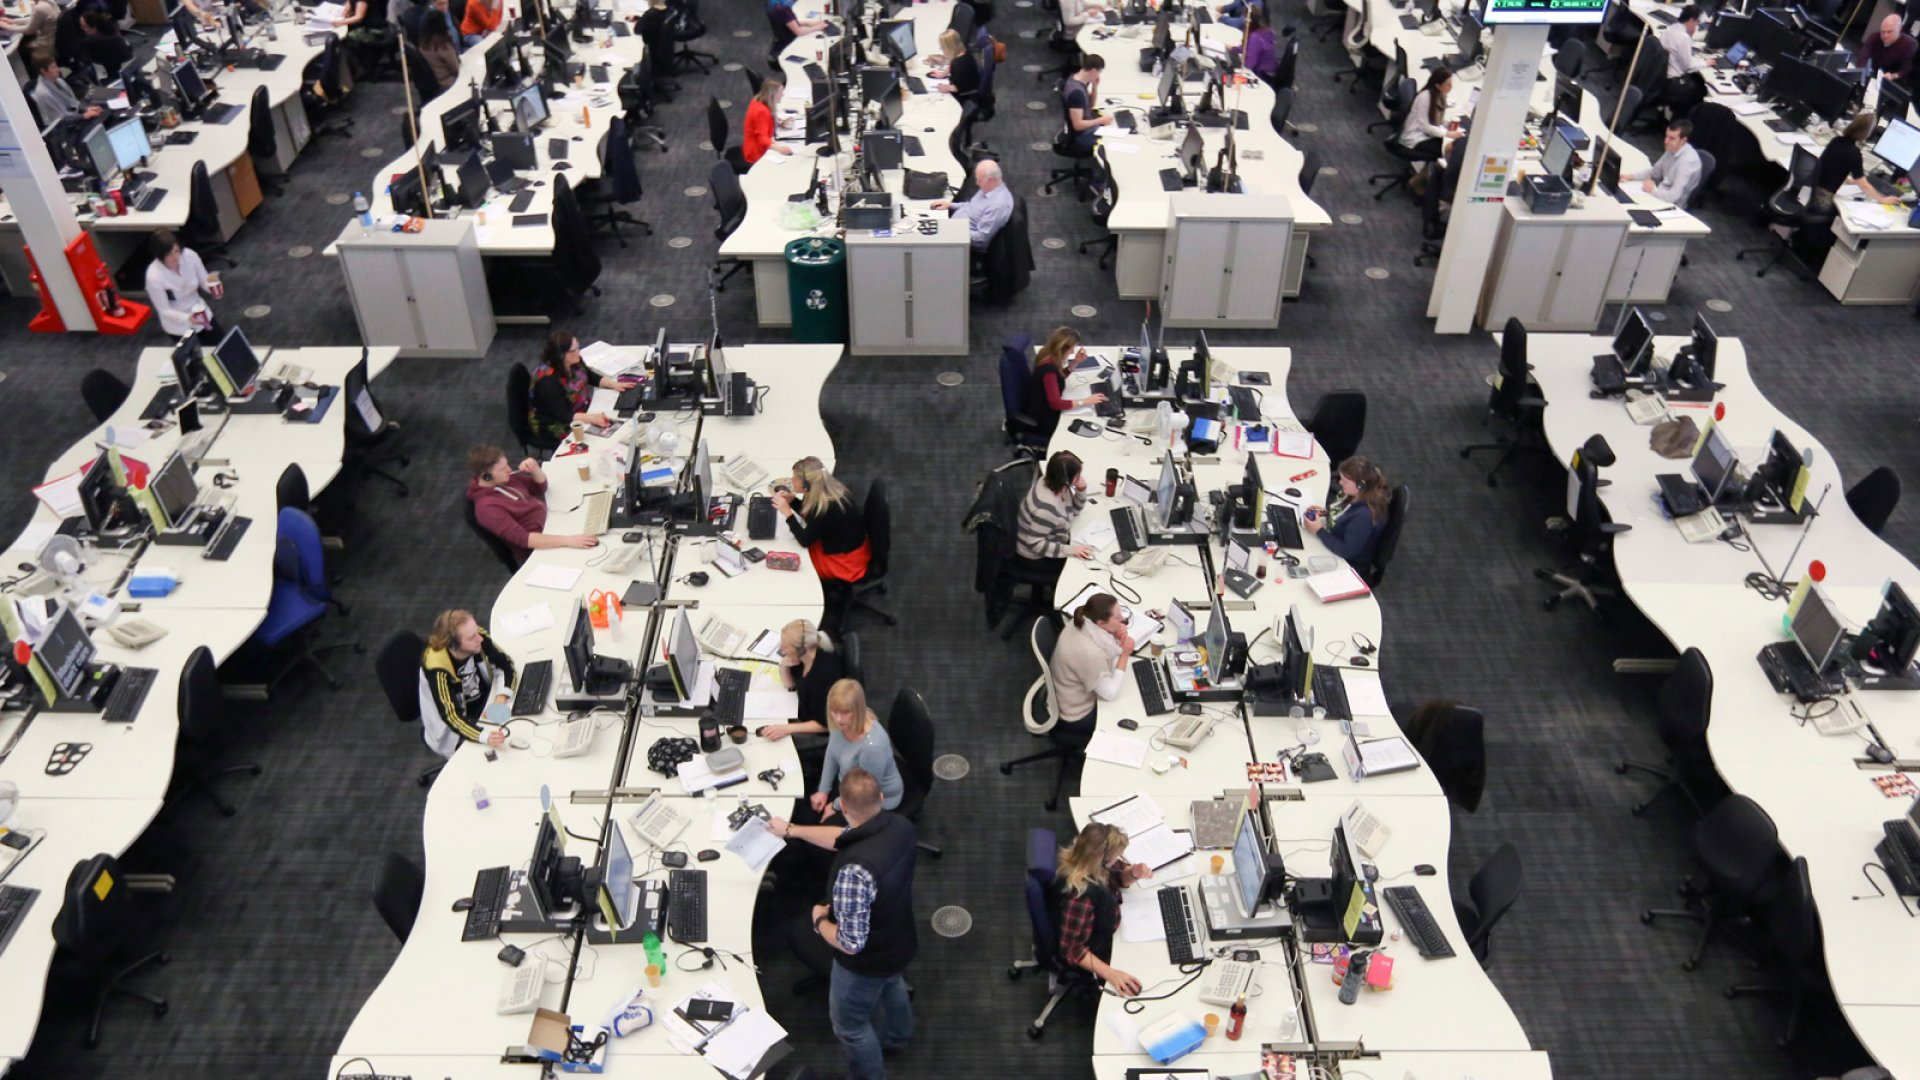 What a Call Center Company Learned From Big Data